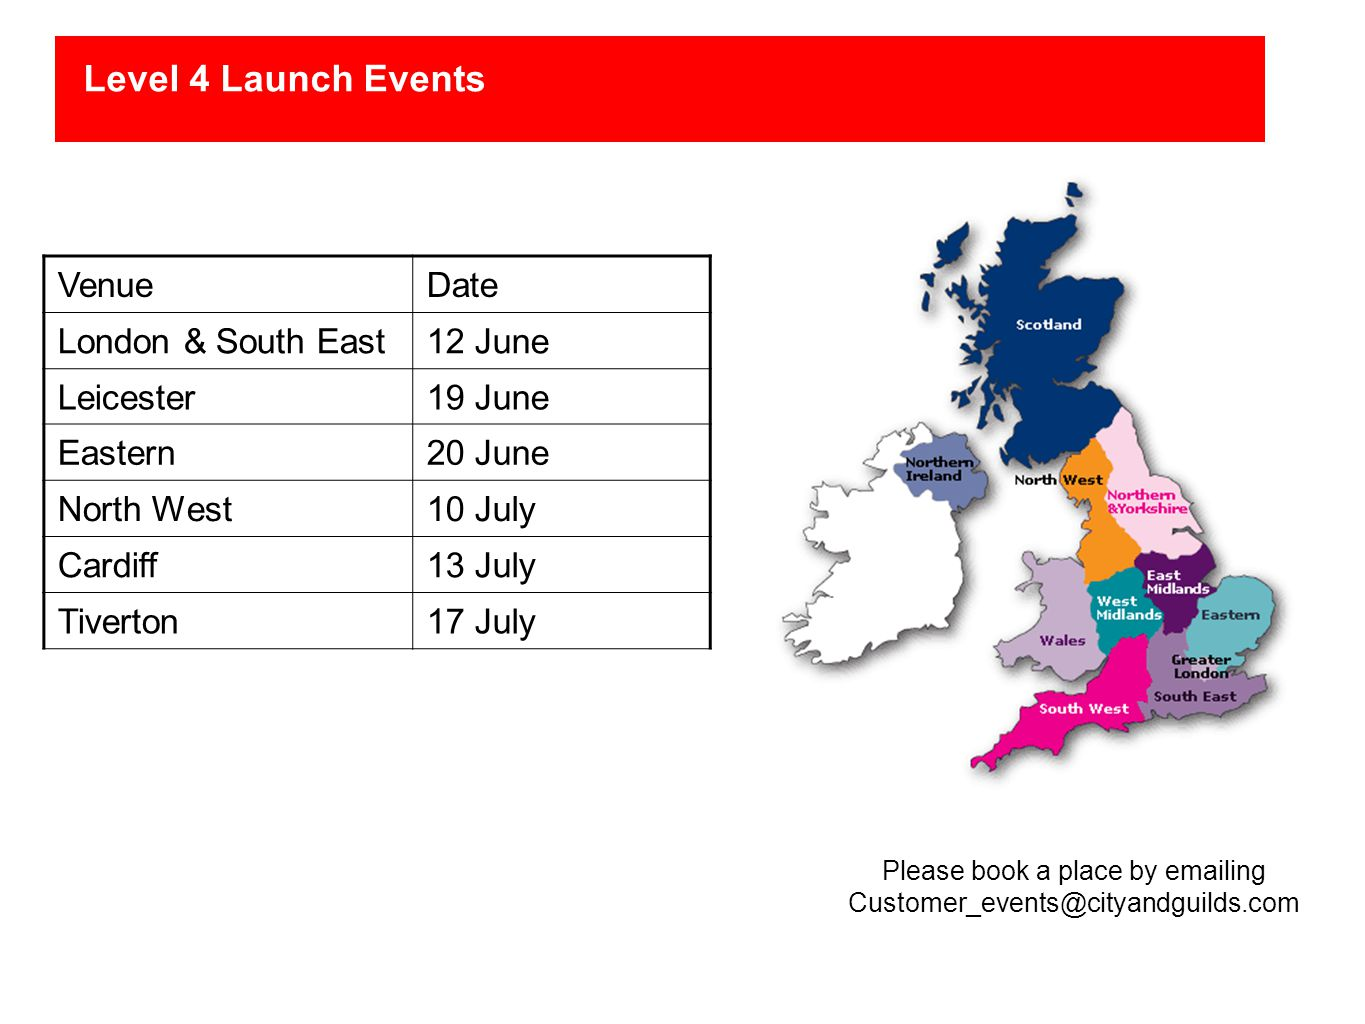 Level 4 Launch Events VenueDate London & South East12 June Leicester19 June Eastern20 June North West10 July Cardiff13 July Tiverton17 July Please book a place by emailing Customer_events@cityandguilds.com